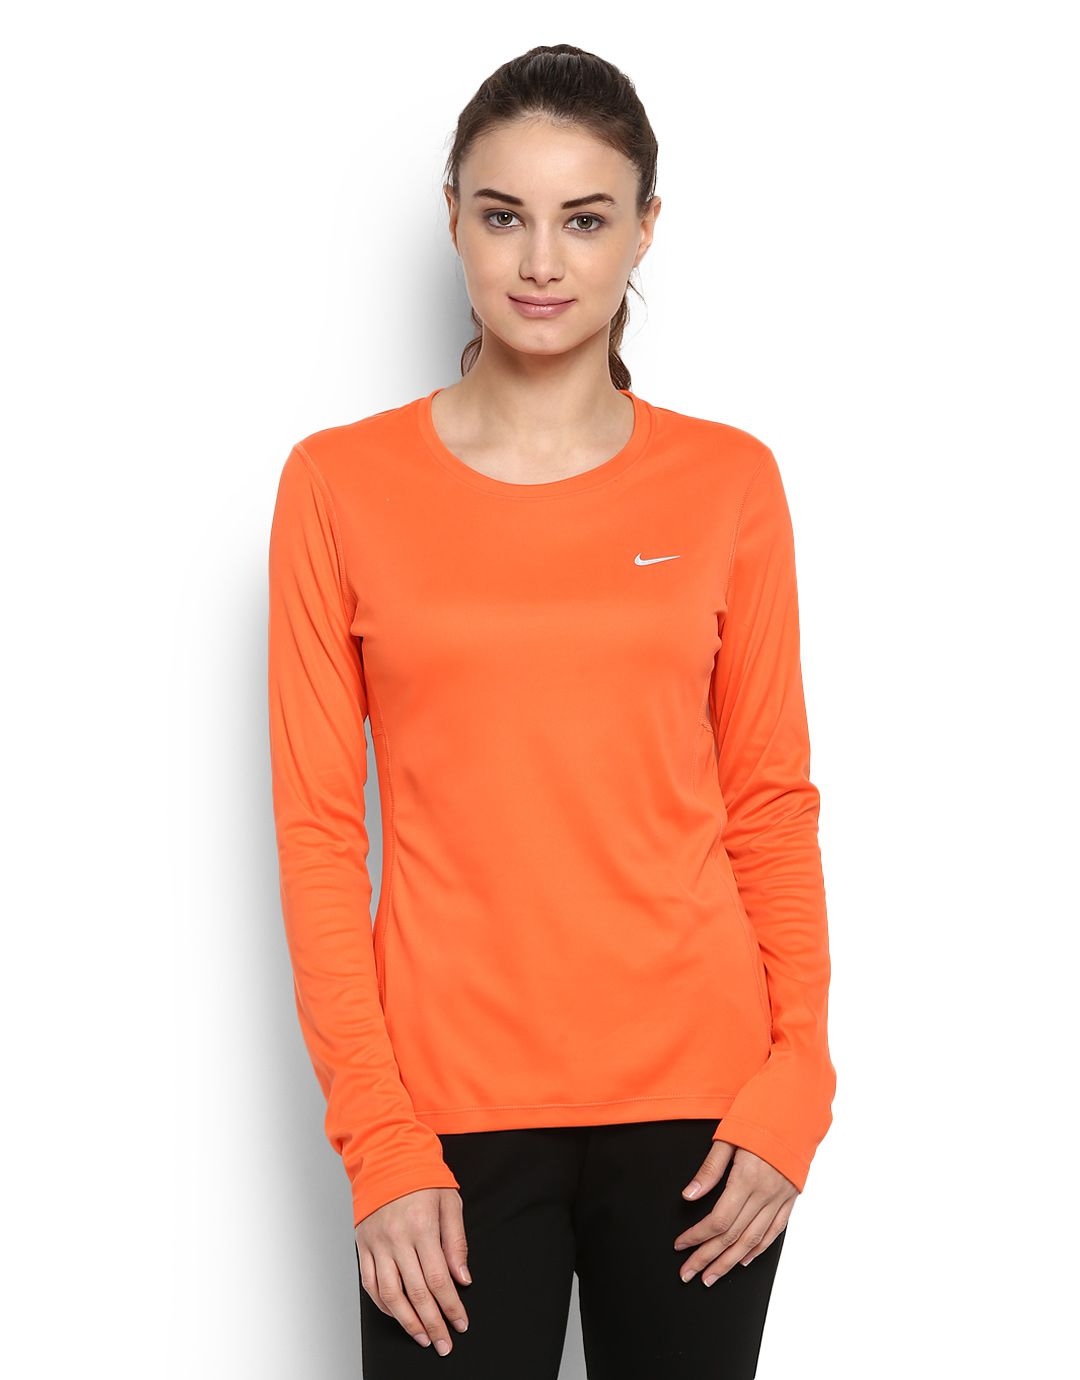 Nike orange tops snapdeal price t shirts deals at for Nike t shirt price